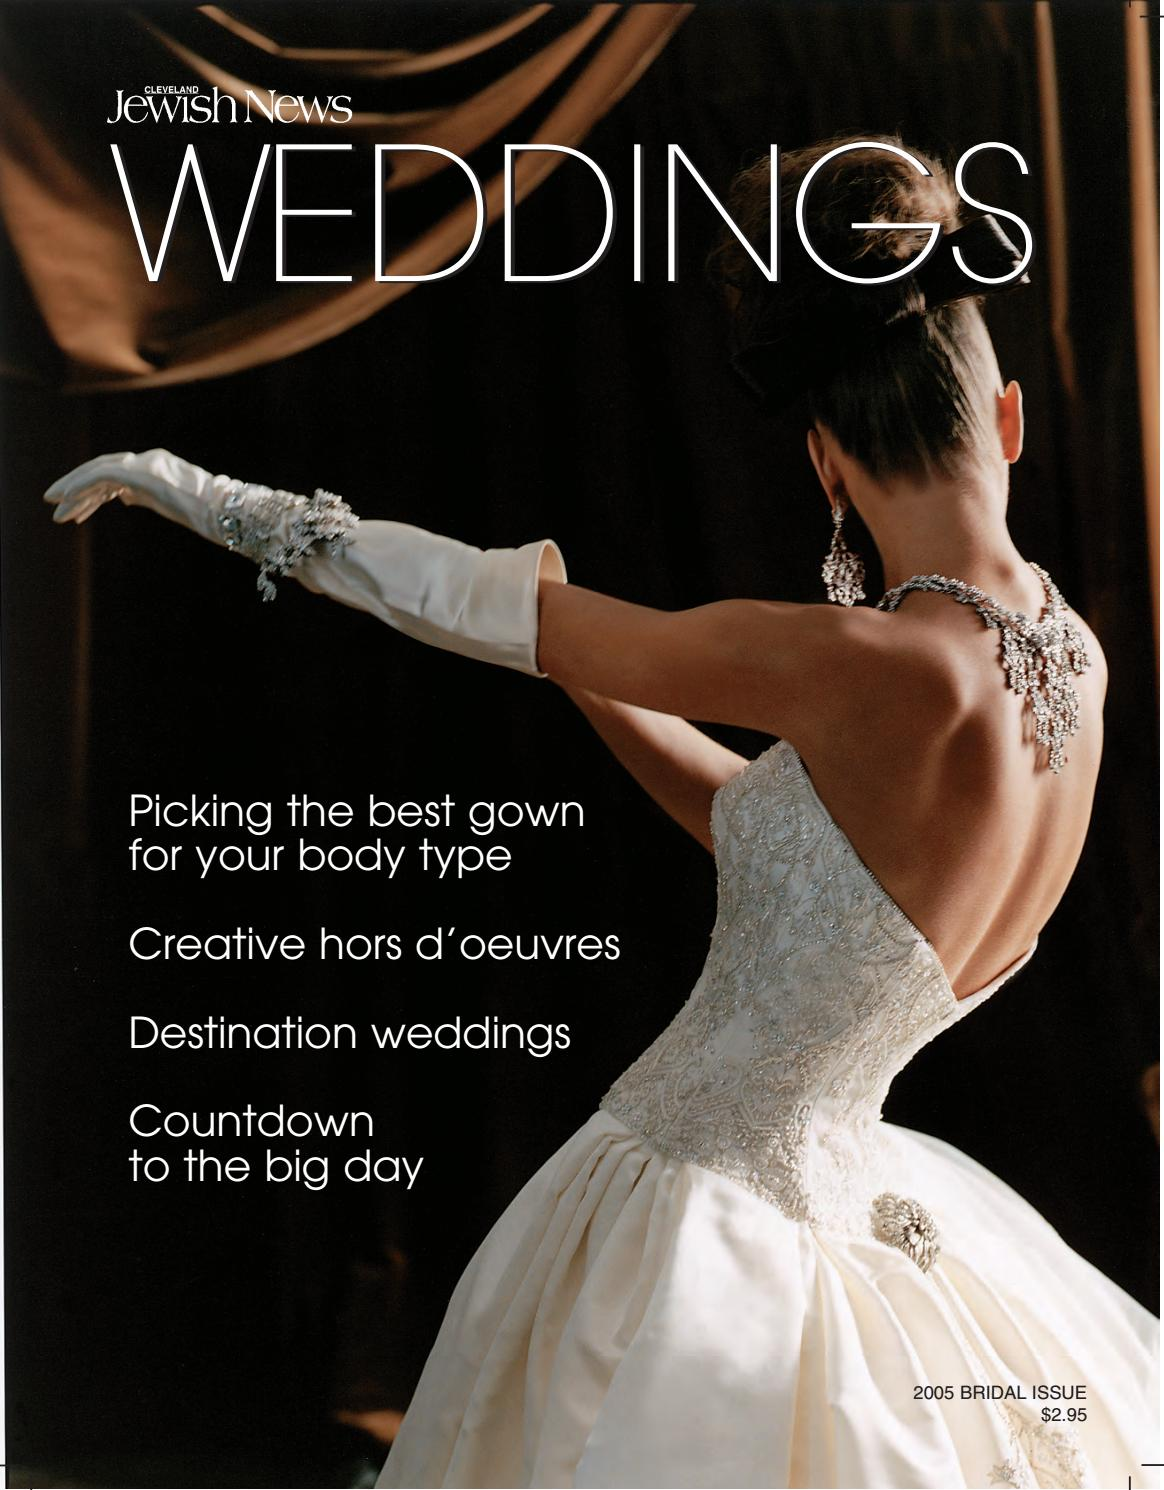 Competitions funny at weddings: finer points of conduct and scripts